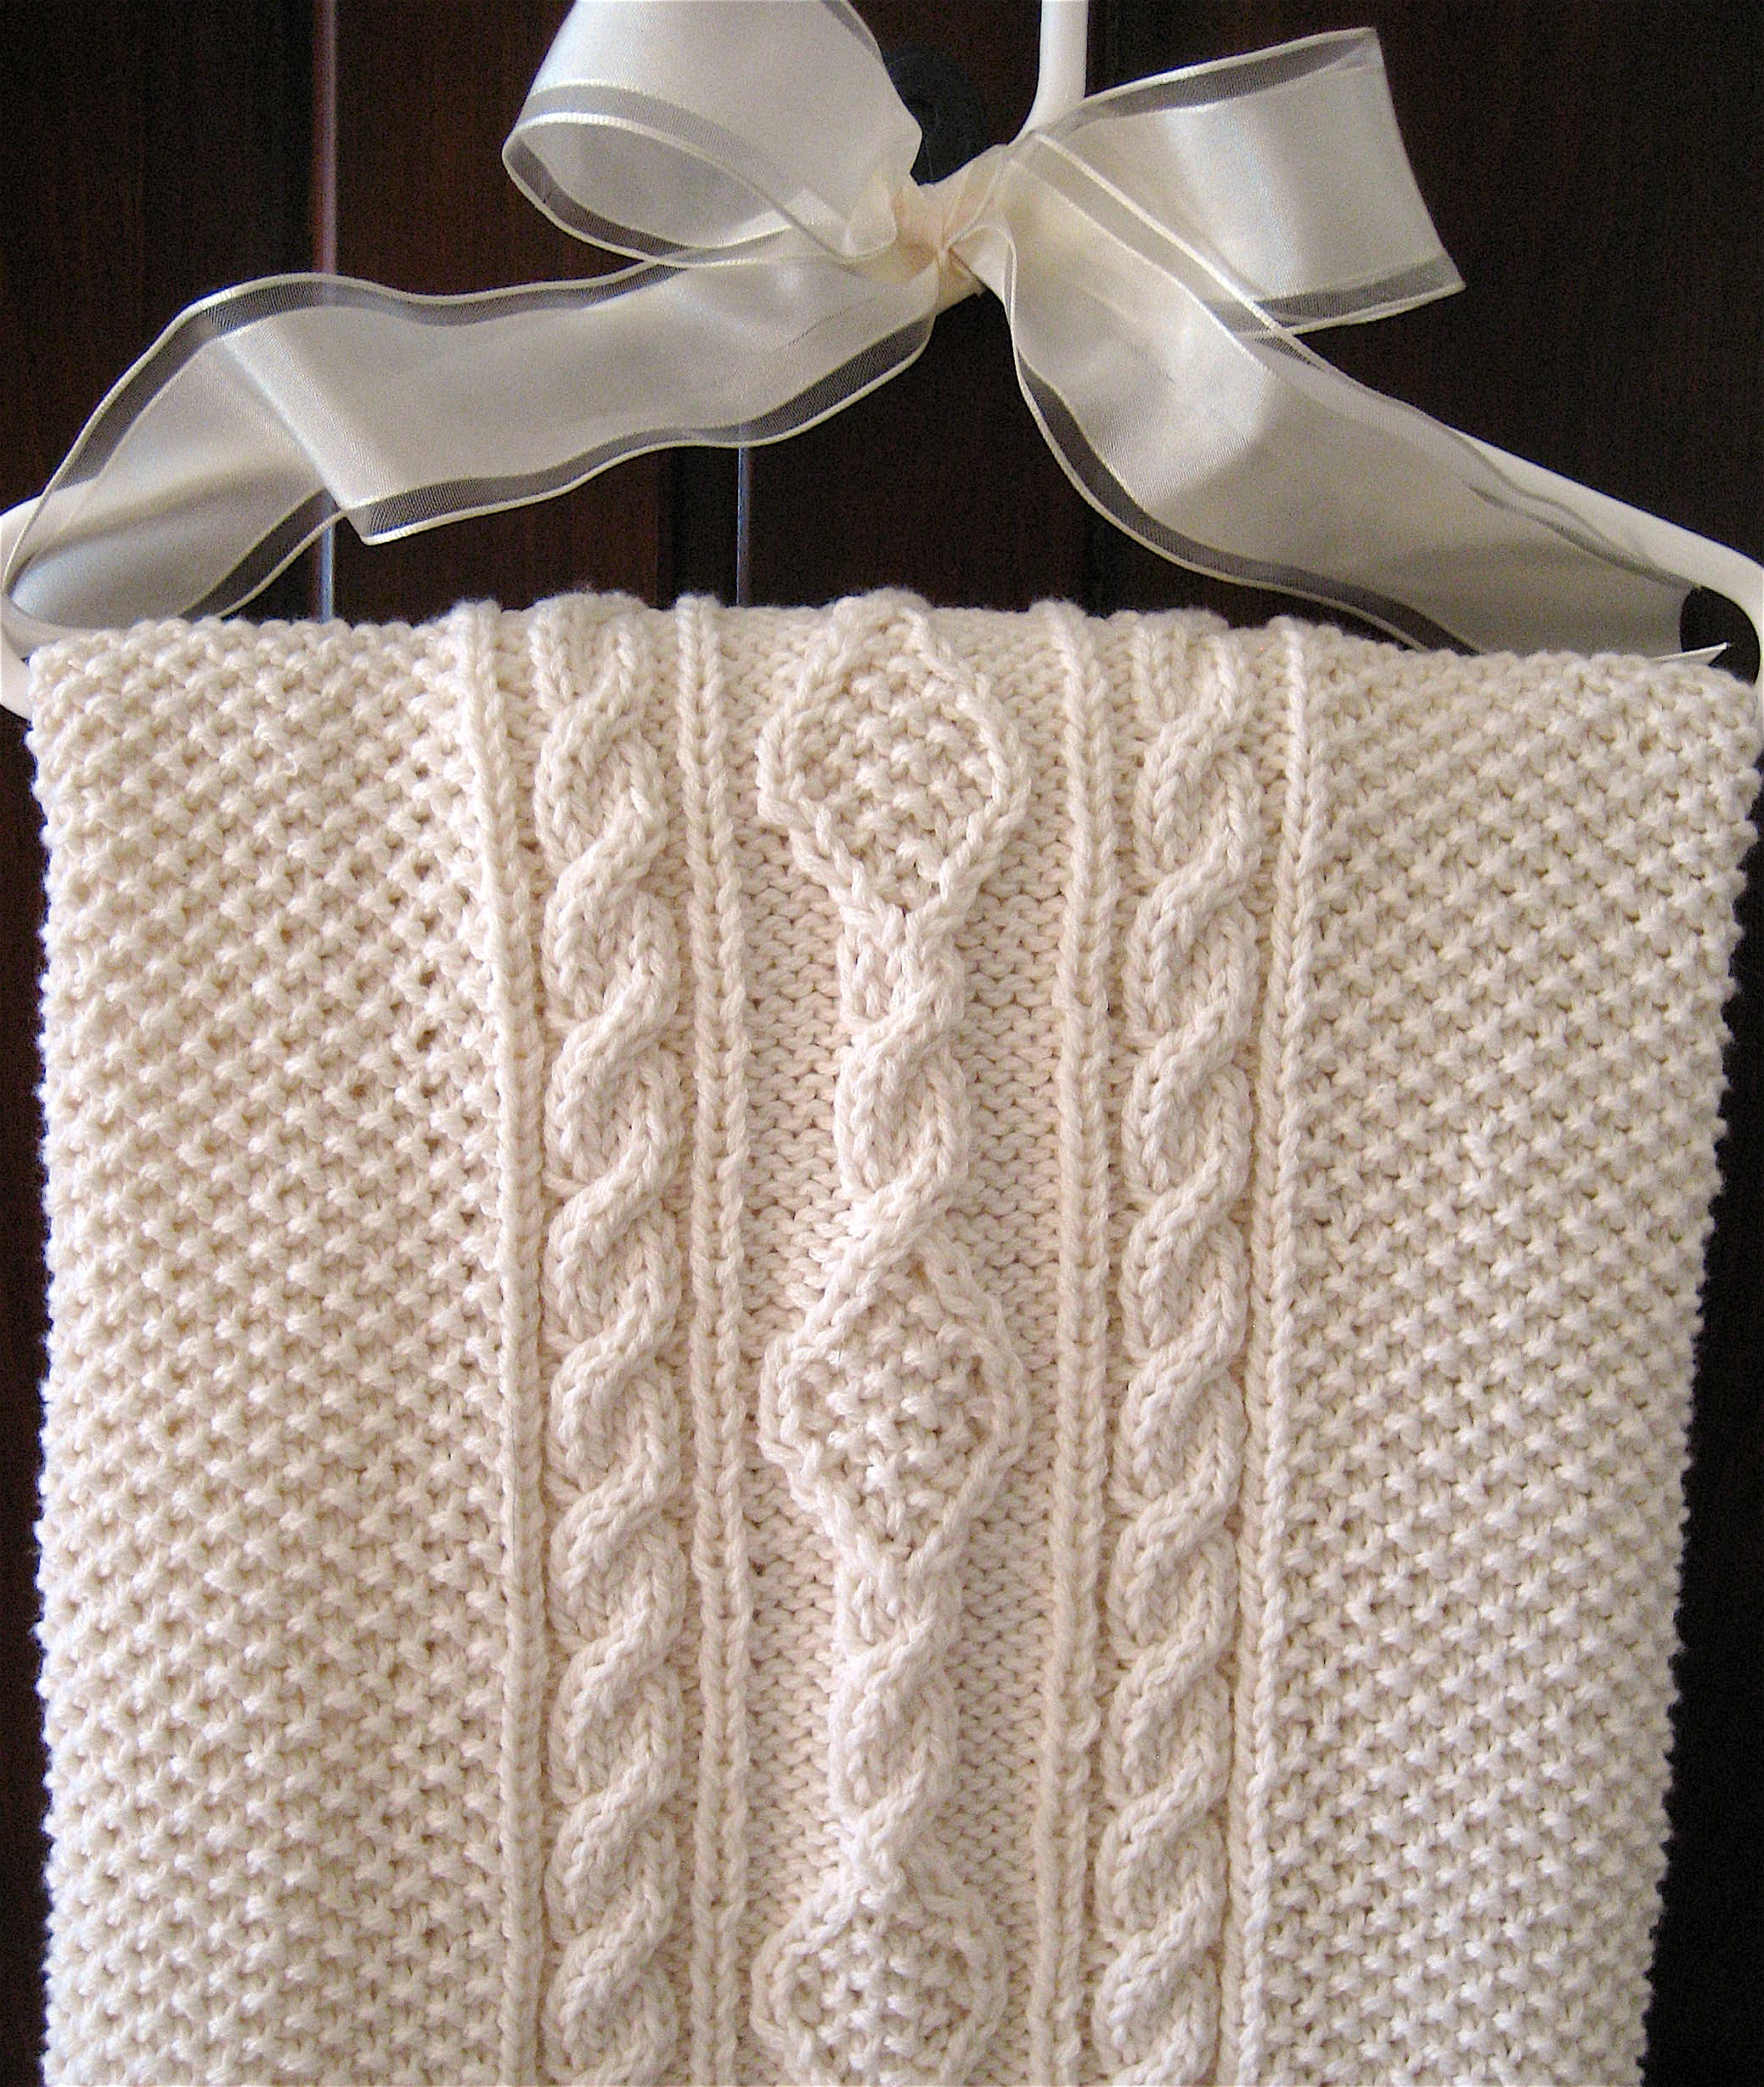 Irish Knit Baby Blanket Pattern : Irish Knit Baby Blanket Big A, Little A